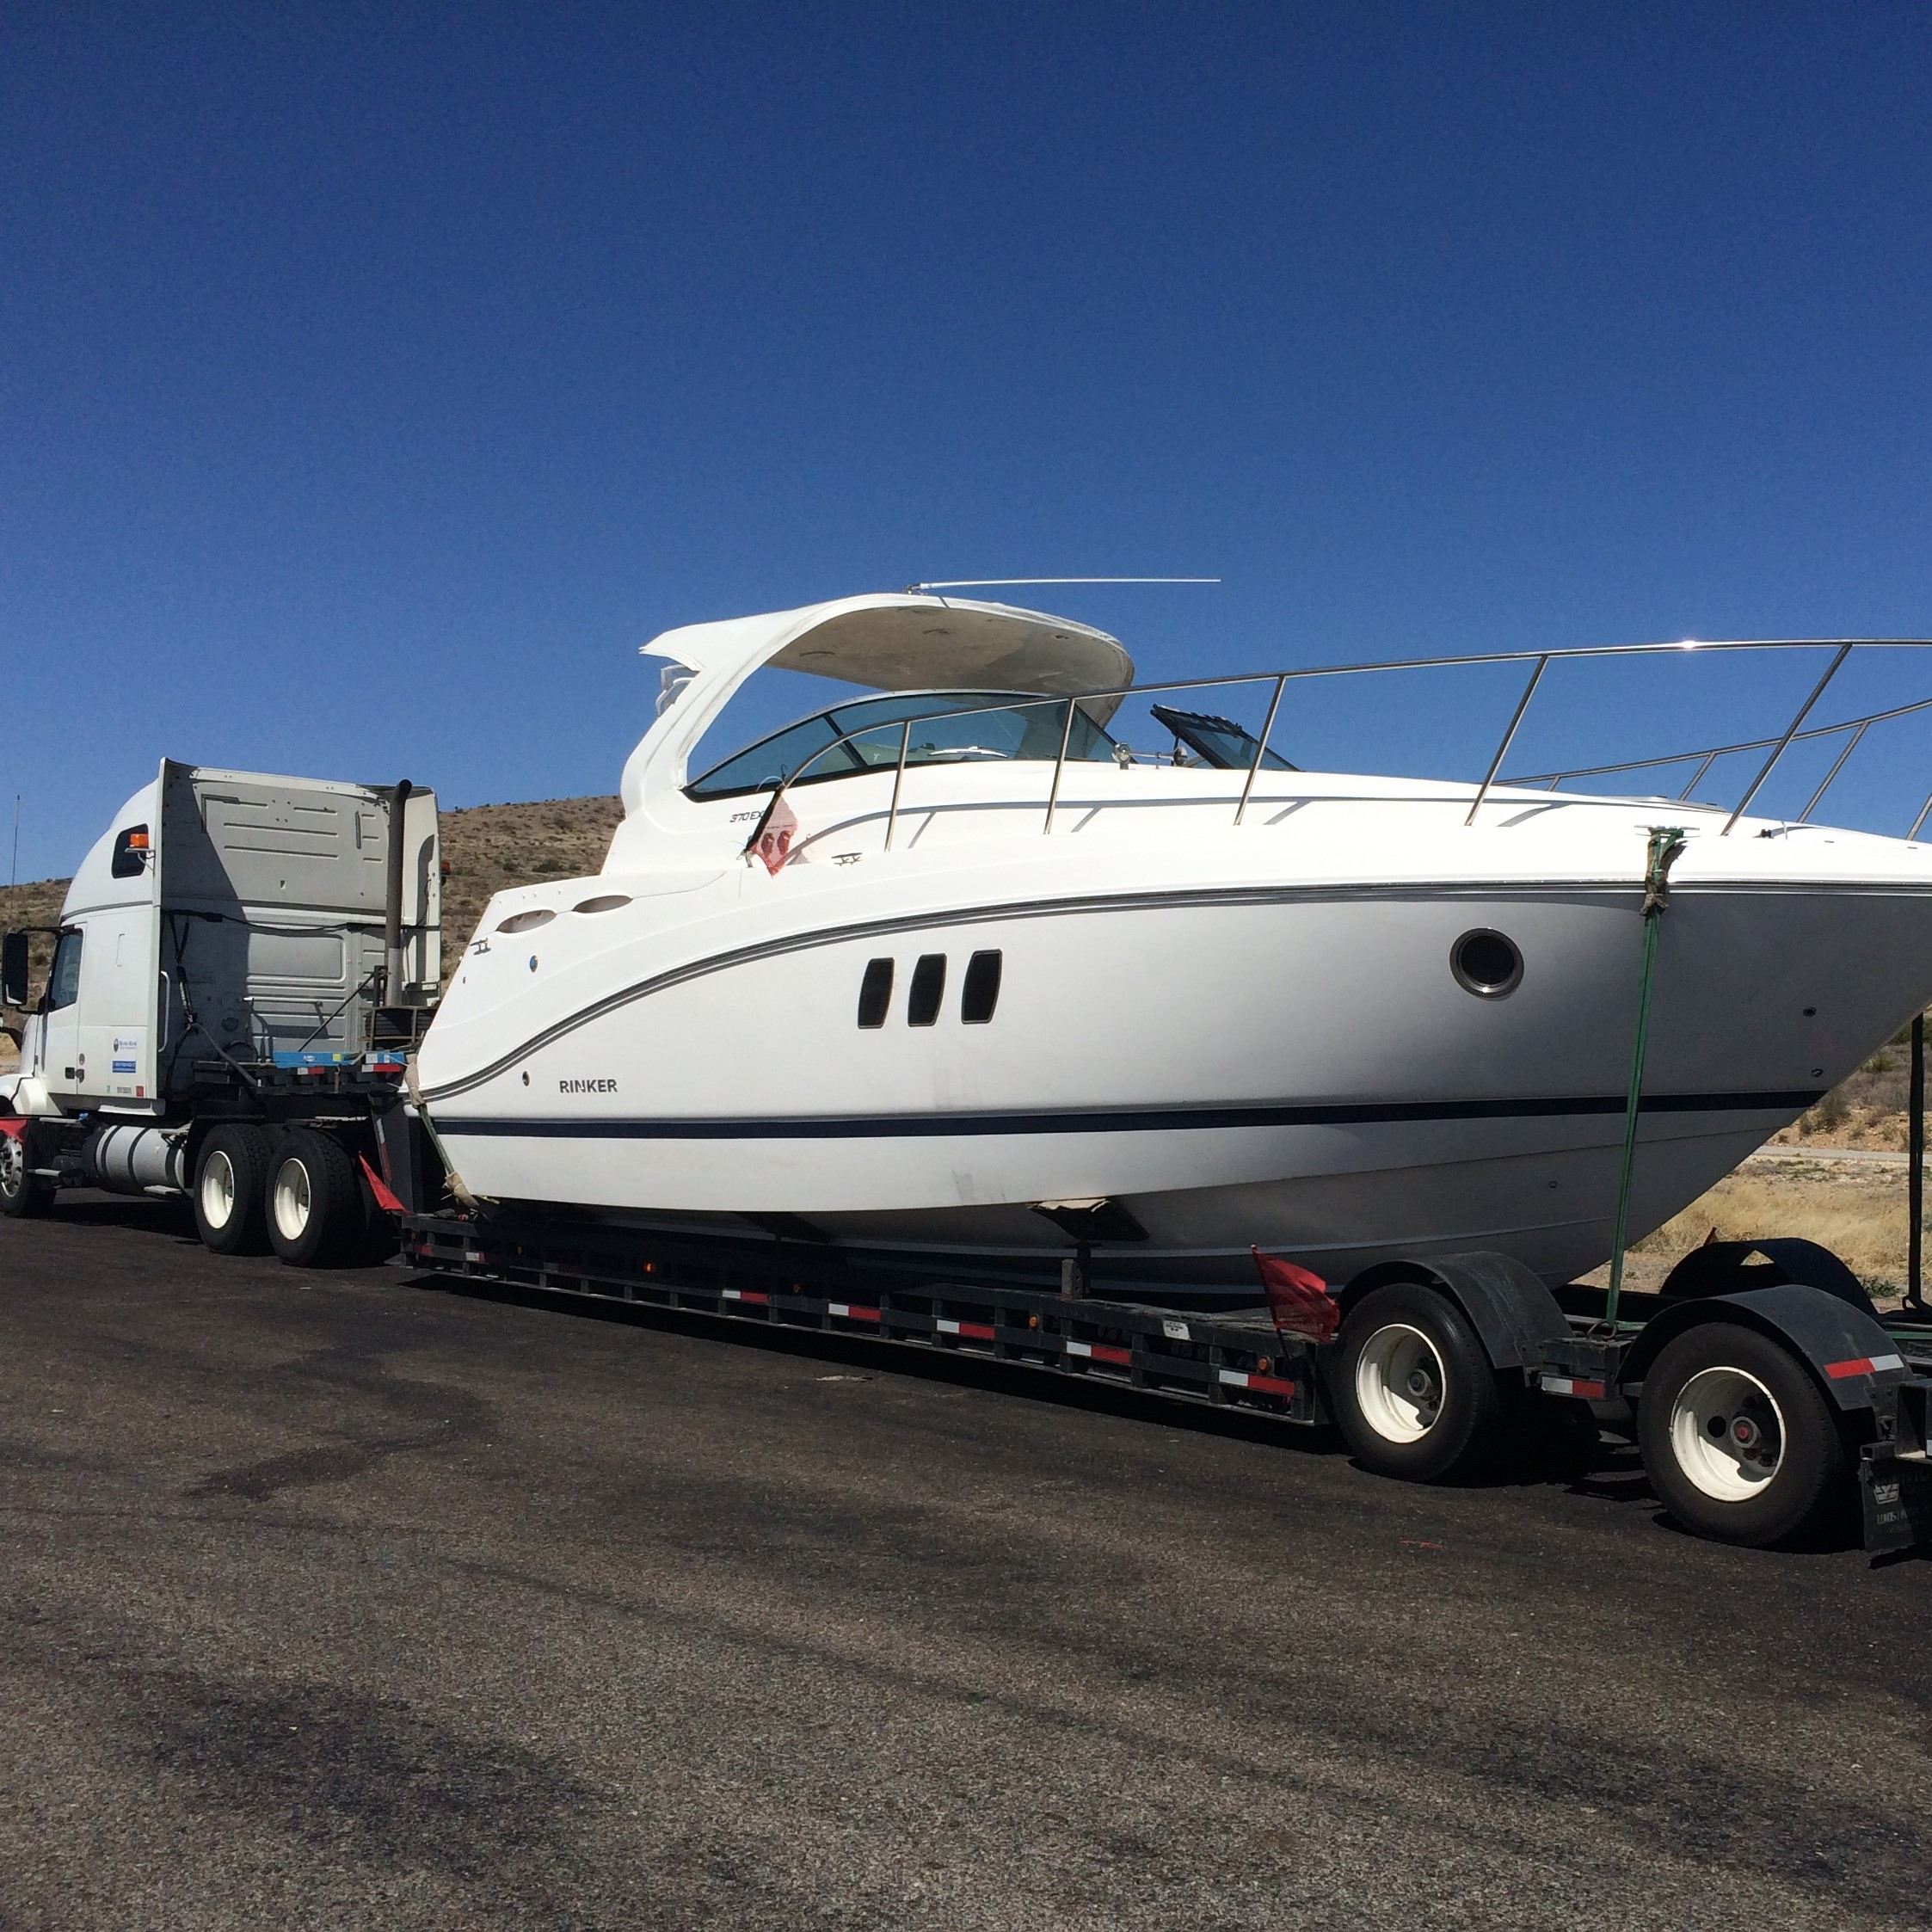 Connecting Boat Transports Nationwide Savings